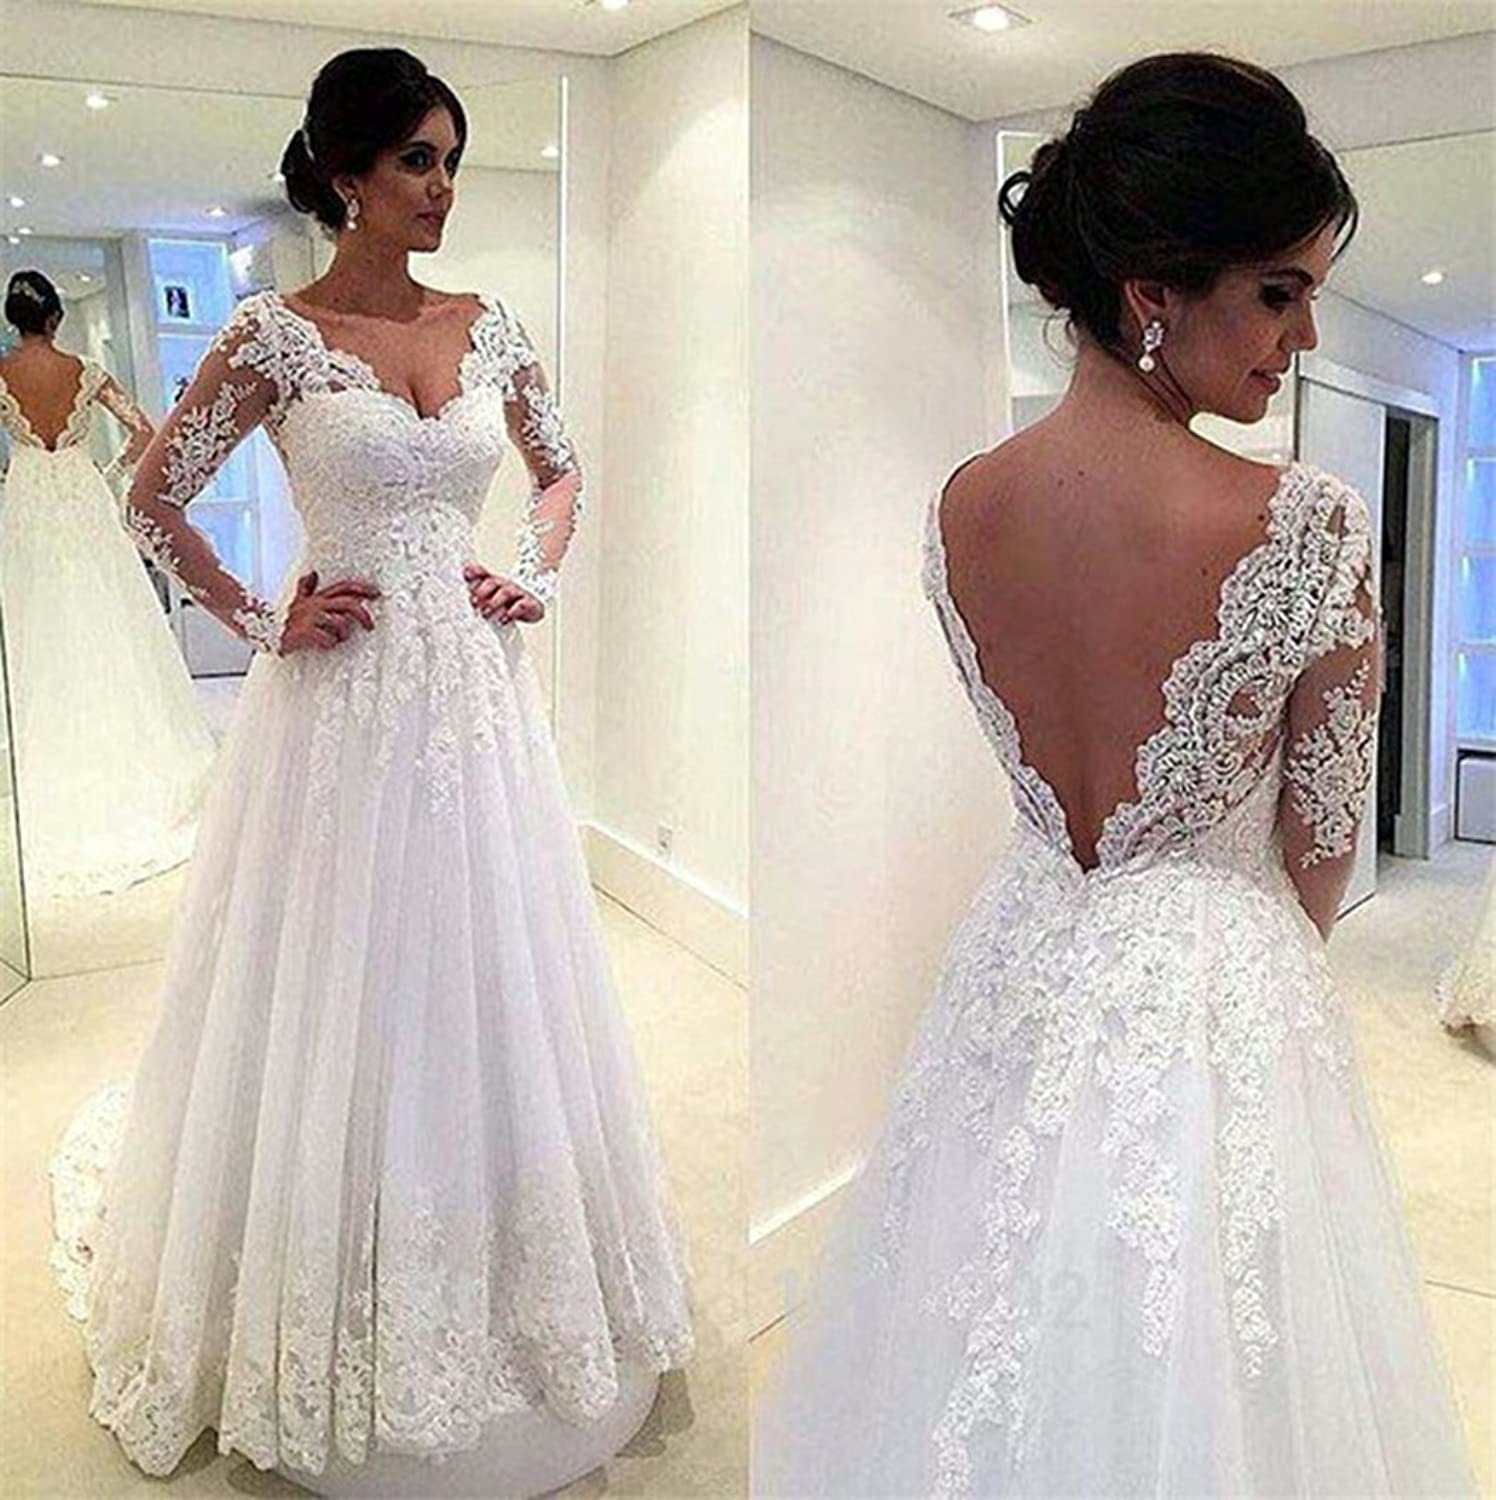 Girls Dress Wedding Dress With Long Sleeves For Womens 2018 Sexy V-Neck A-Line Backless Bridal Gowns at Amazon Womens Clothing store: